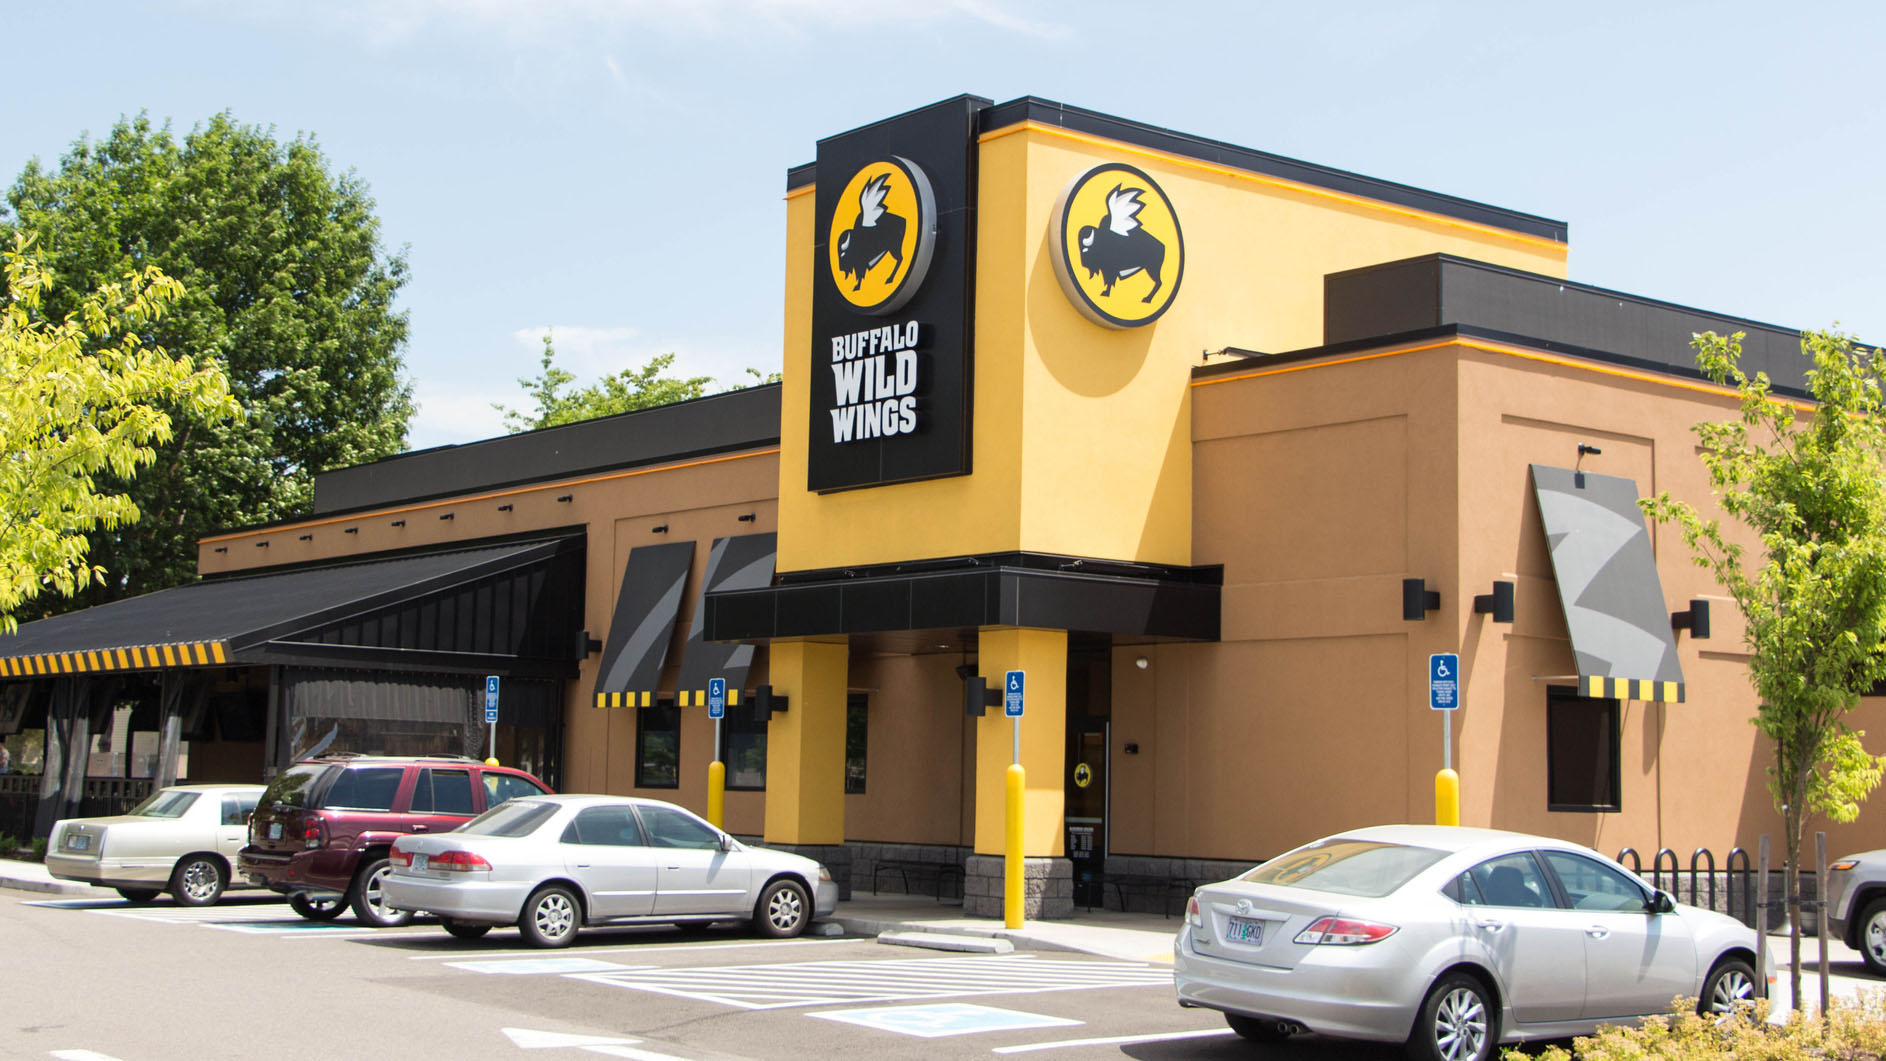 Westlake Legal Group buffalo-wild-wings Lawsuit claims Buffalo Wild Wings refused to serve black customers because they 'don't give good tips' Michael Hollan fox-news/food-drink/food/restaurants fox-news/food-drink/food/fast-food fox news fnc/food-drink fnc article ac8cea71-944b-5a56-b3b3-bf16fa49bf11